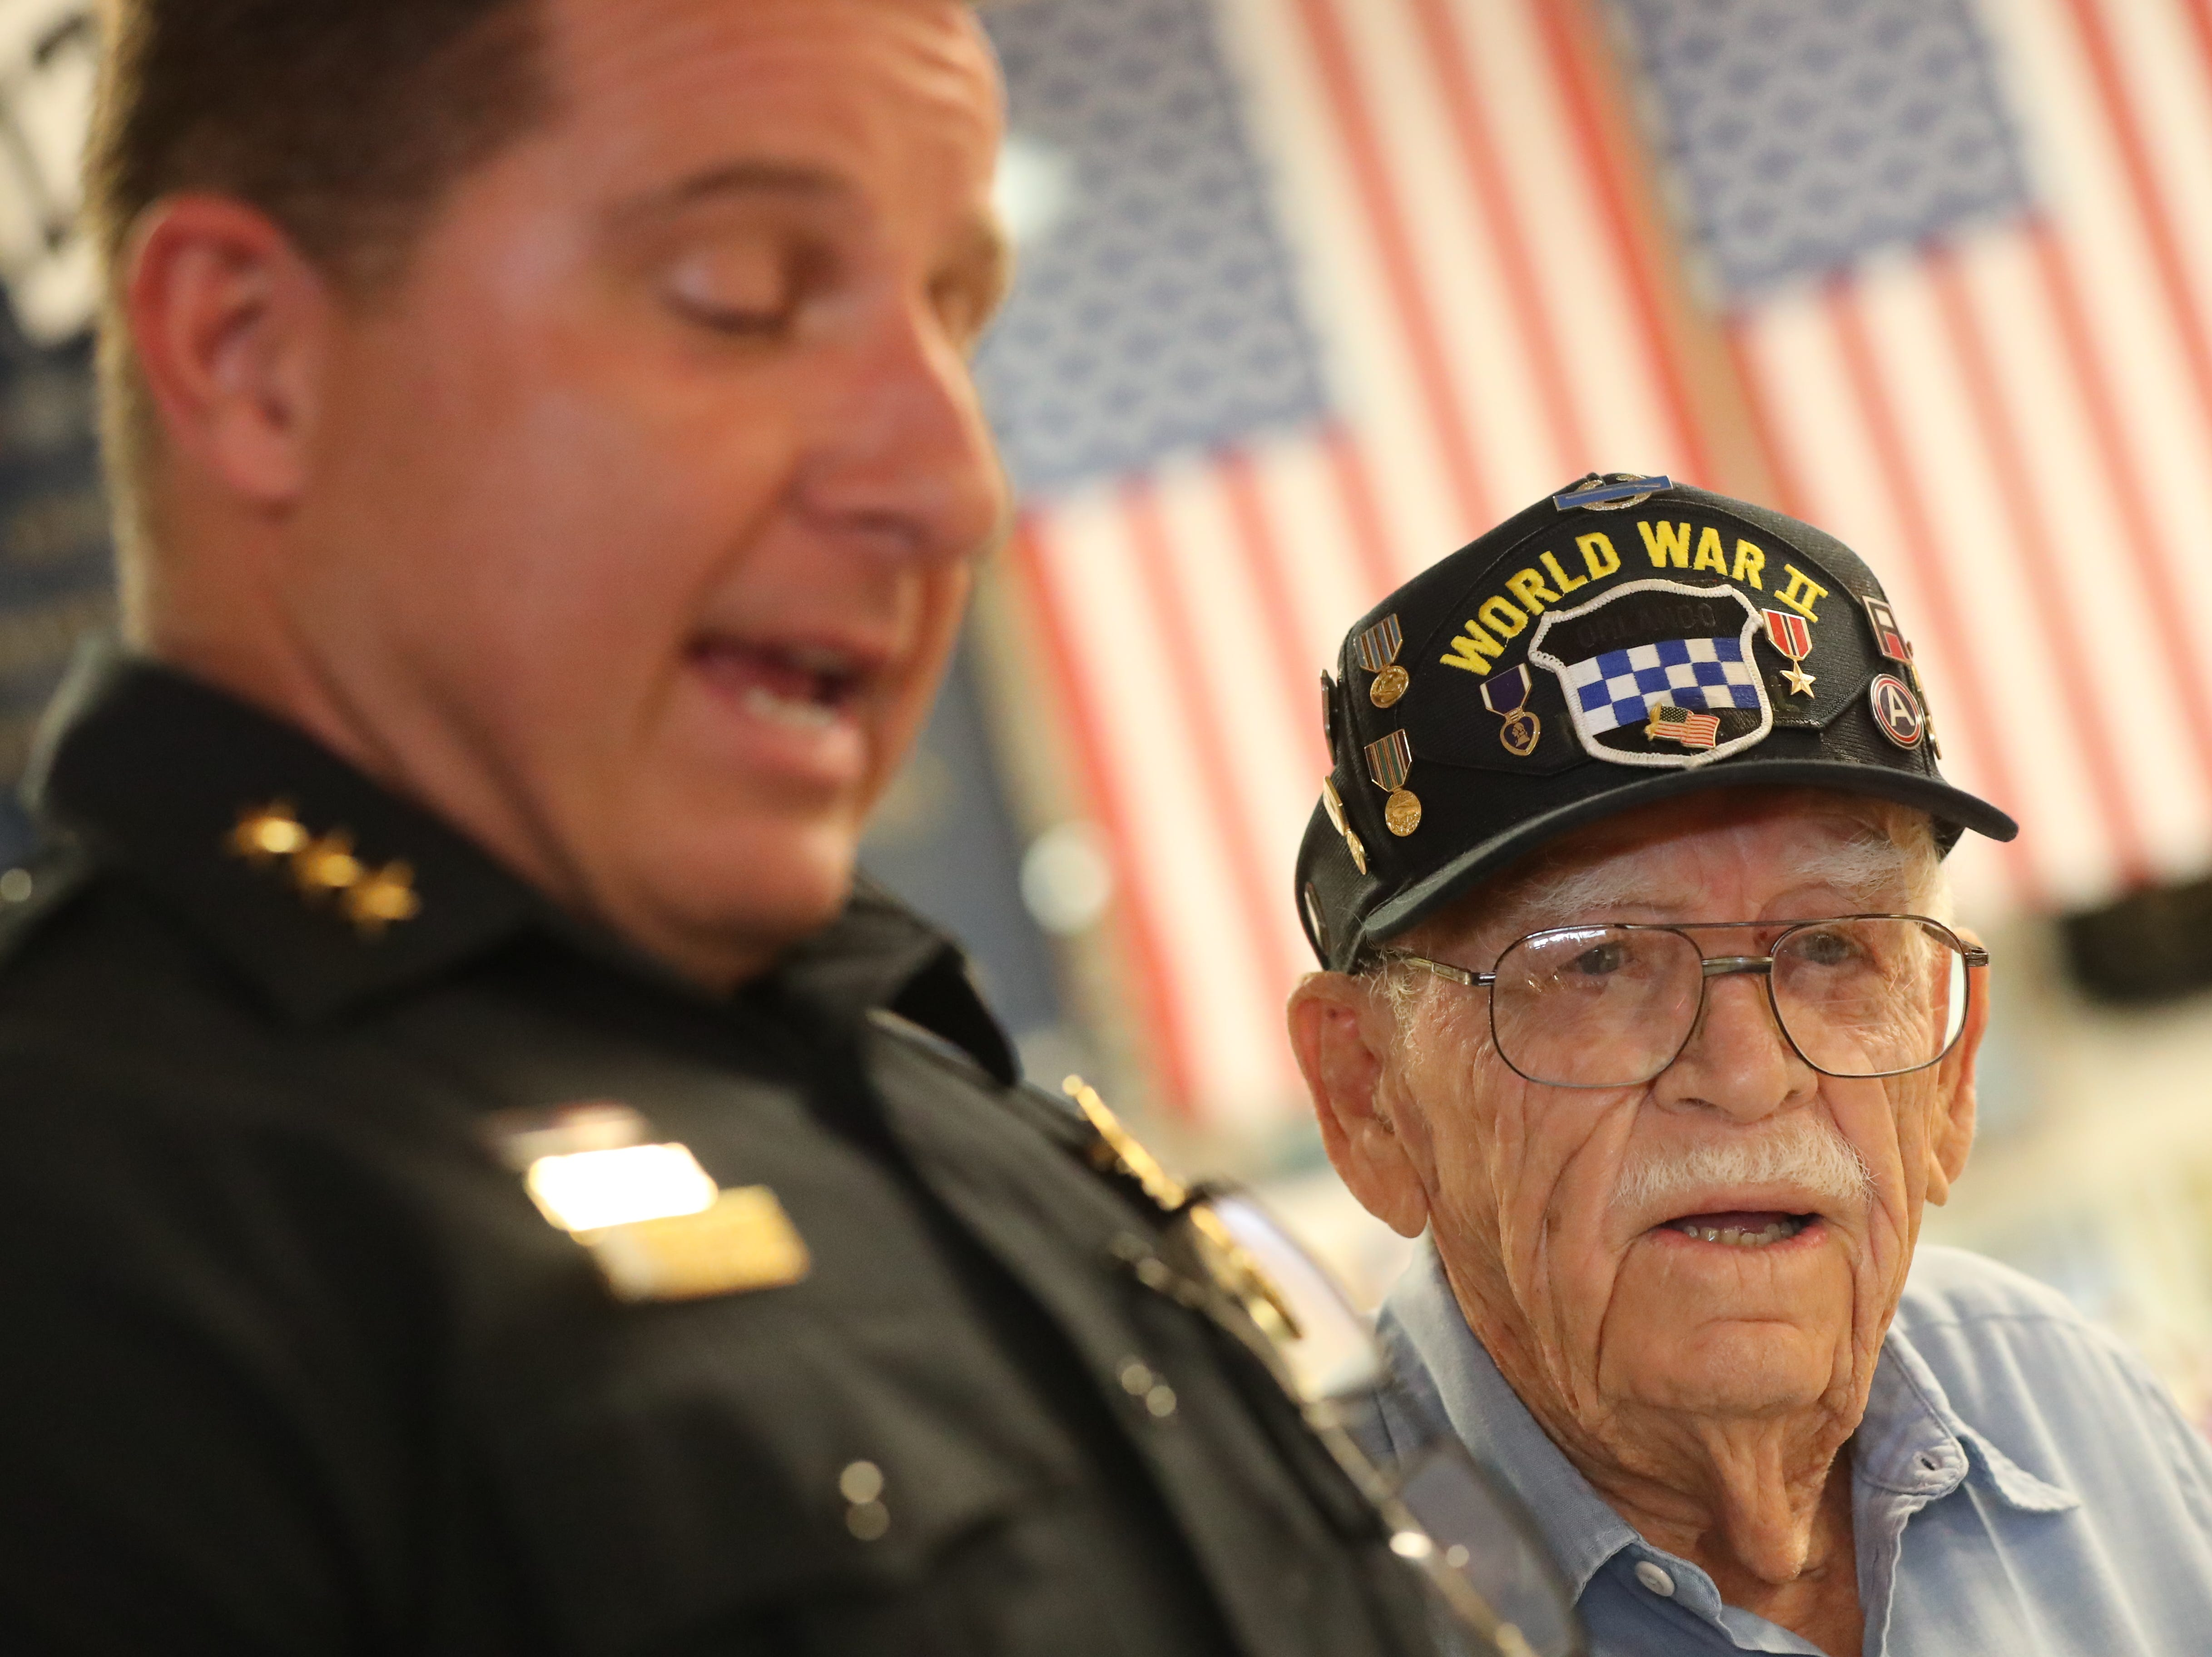 Cape Coral Police Chief David Newlan reads a letter from the Cape Coral Mayor at his party. William Workman turned 97. His family and friends had a surprise birthday party at the Southwest Florida Military Museum, in Cape Coral. Bill was with the 99th Division that landed in Europe on Nov. 17, 1944, then shipped to Bastogne.